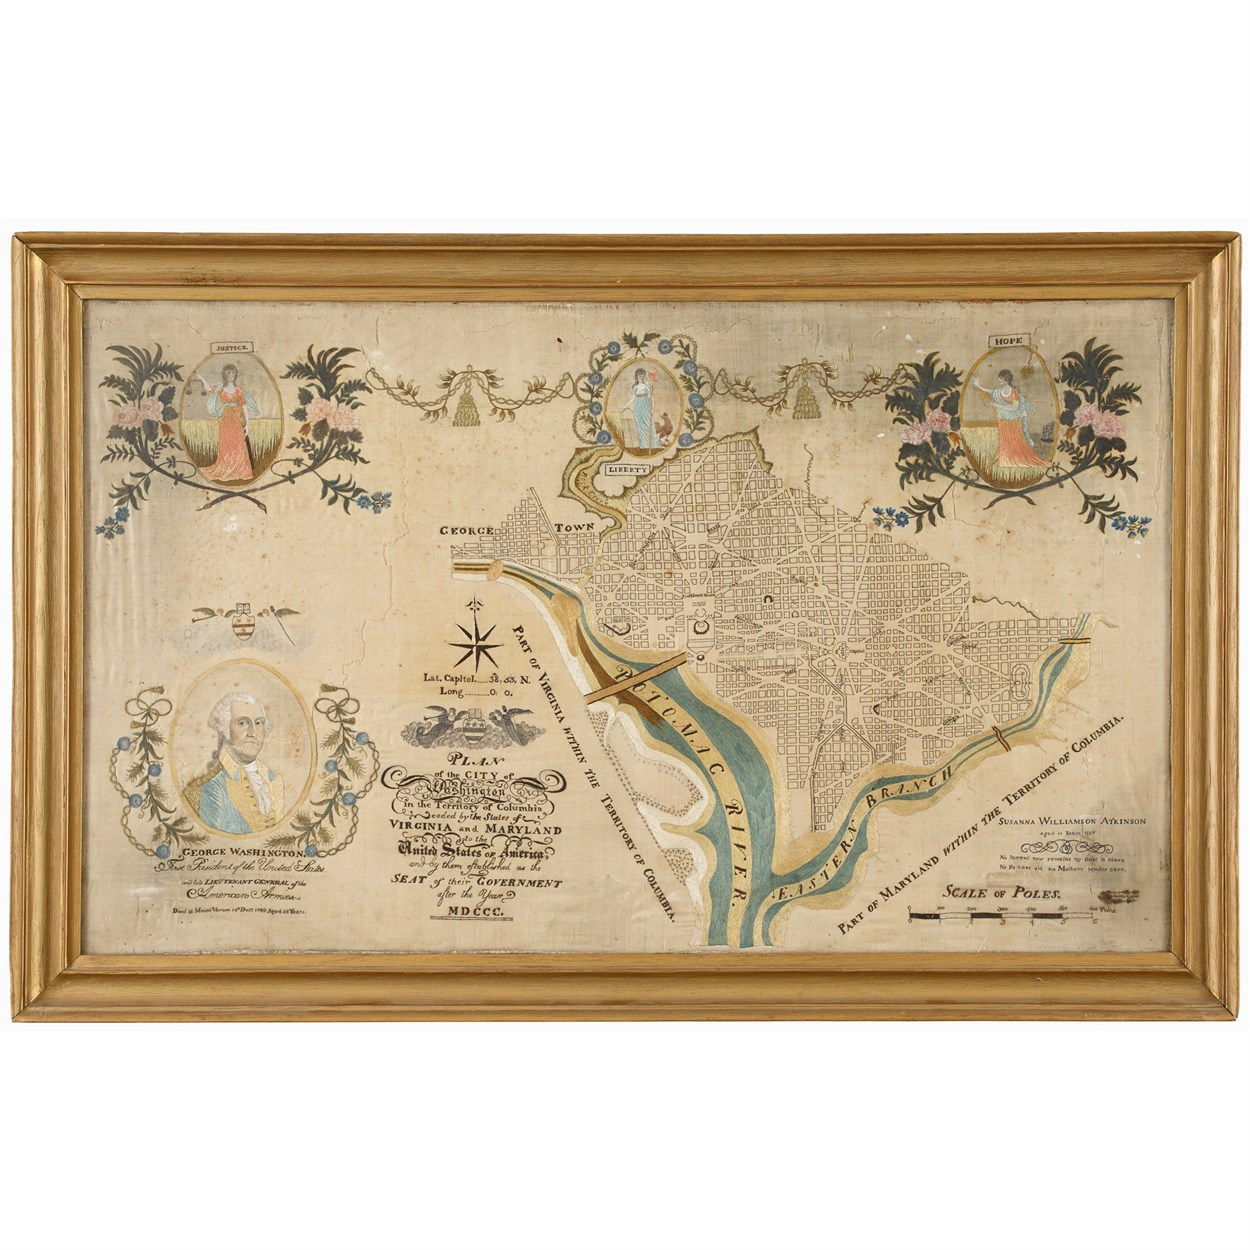 Lot 86 - Rare embroidered plan of the City of Washington in the Territory of Columbia